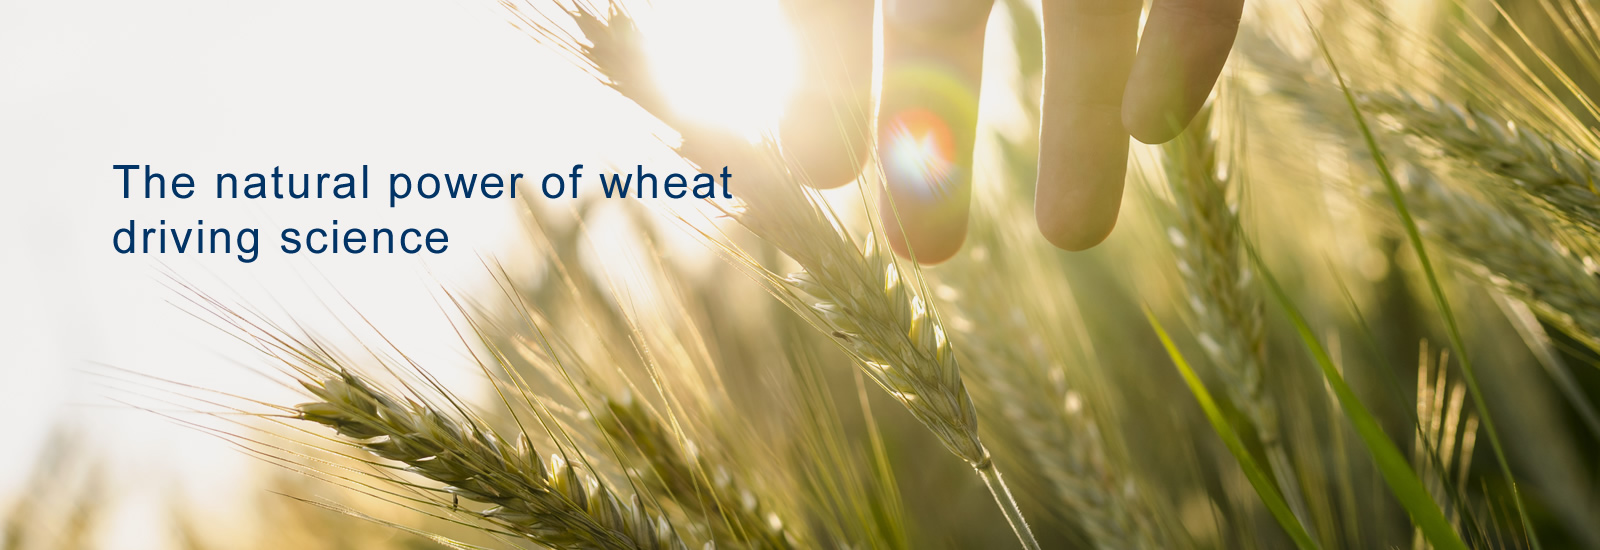 The natural power of wheat driving science